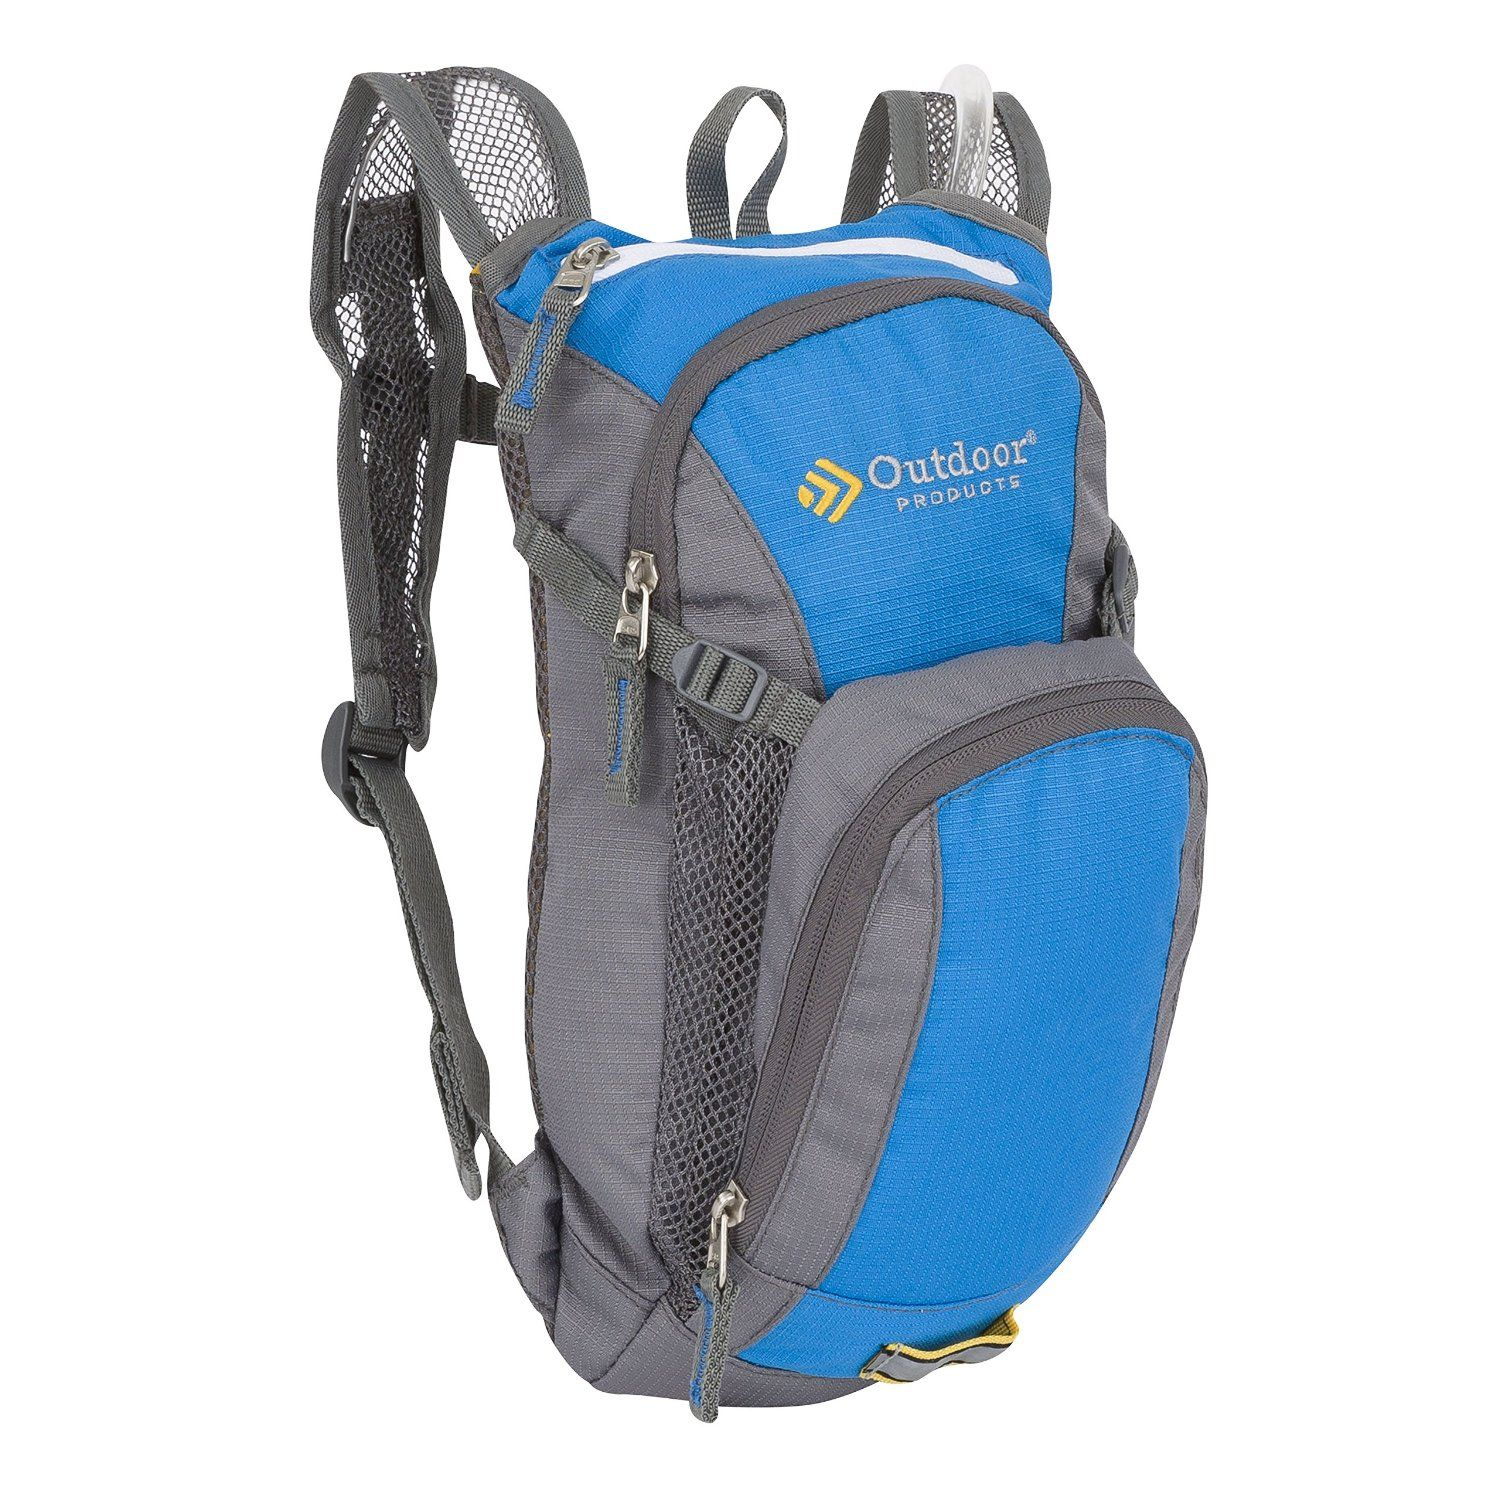 Outdoor Products Youth Hydration Pack You can additional